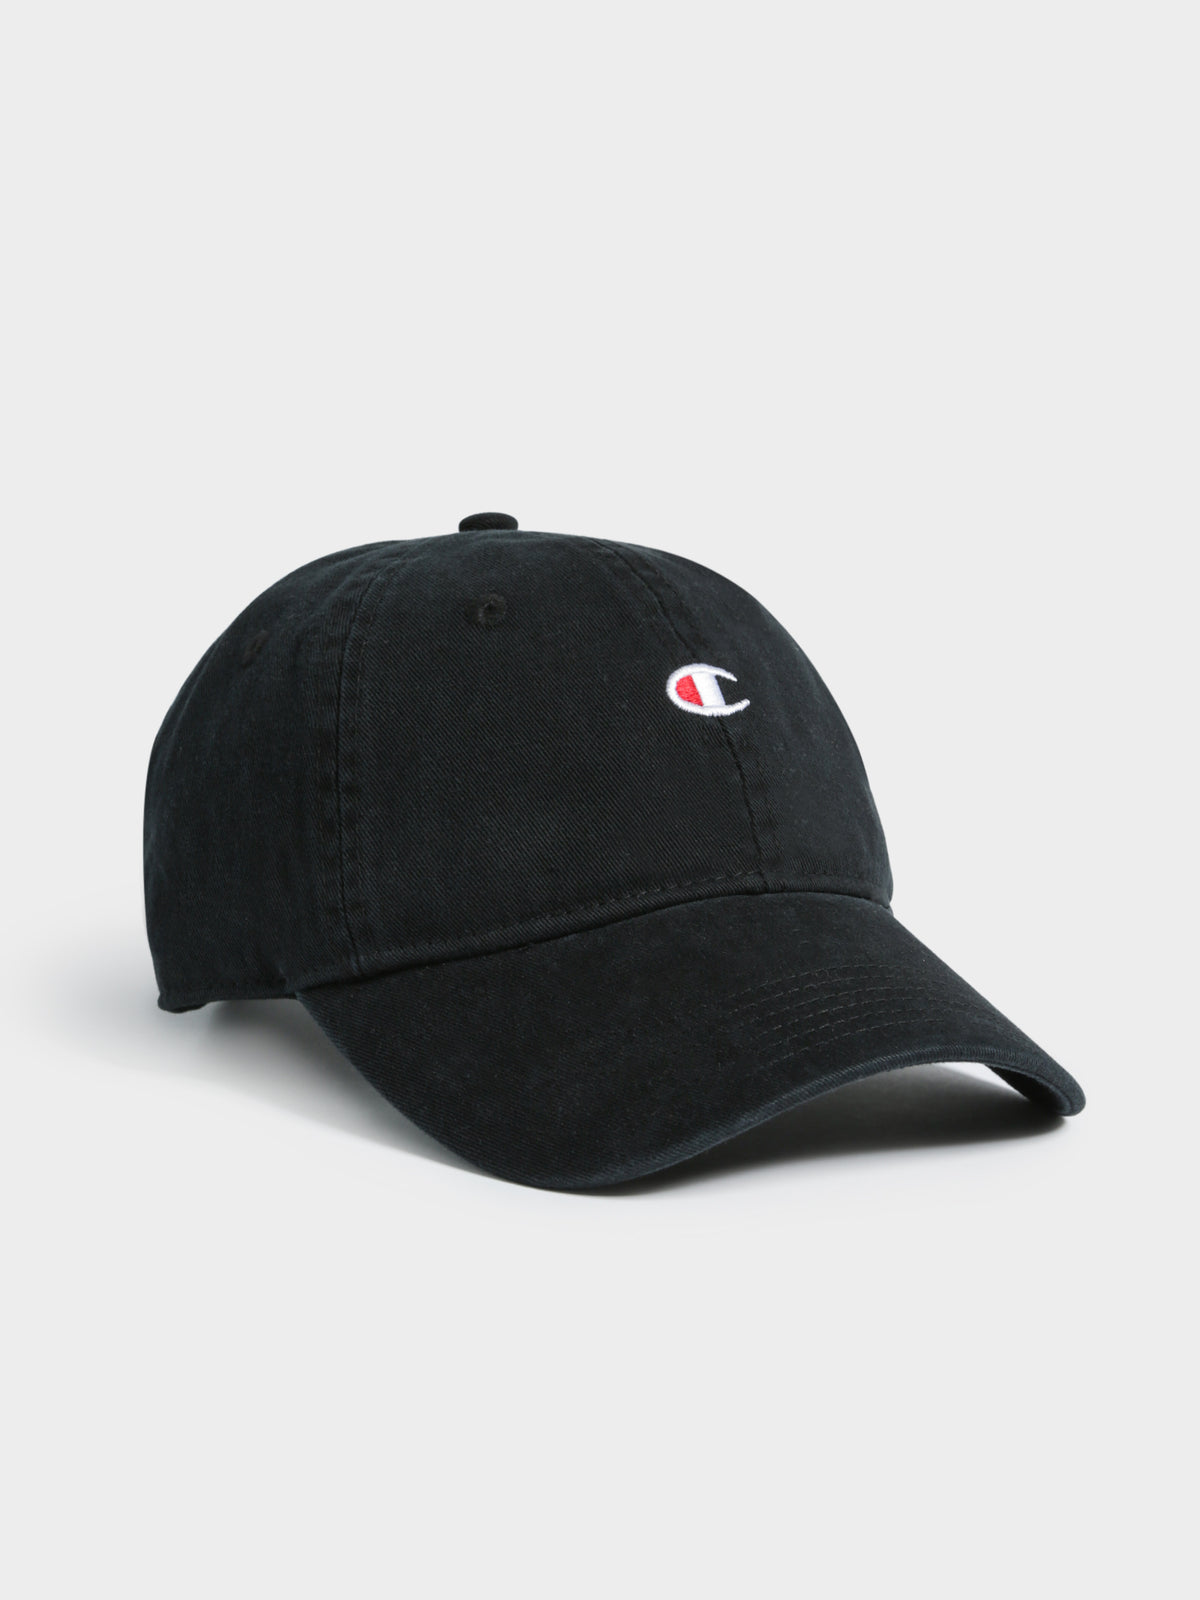 C Life Japan Cap in Black